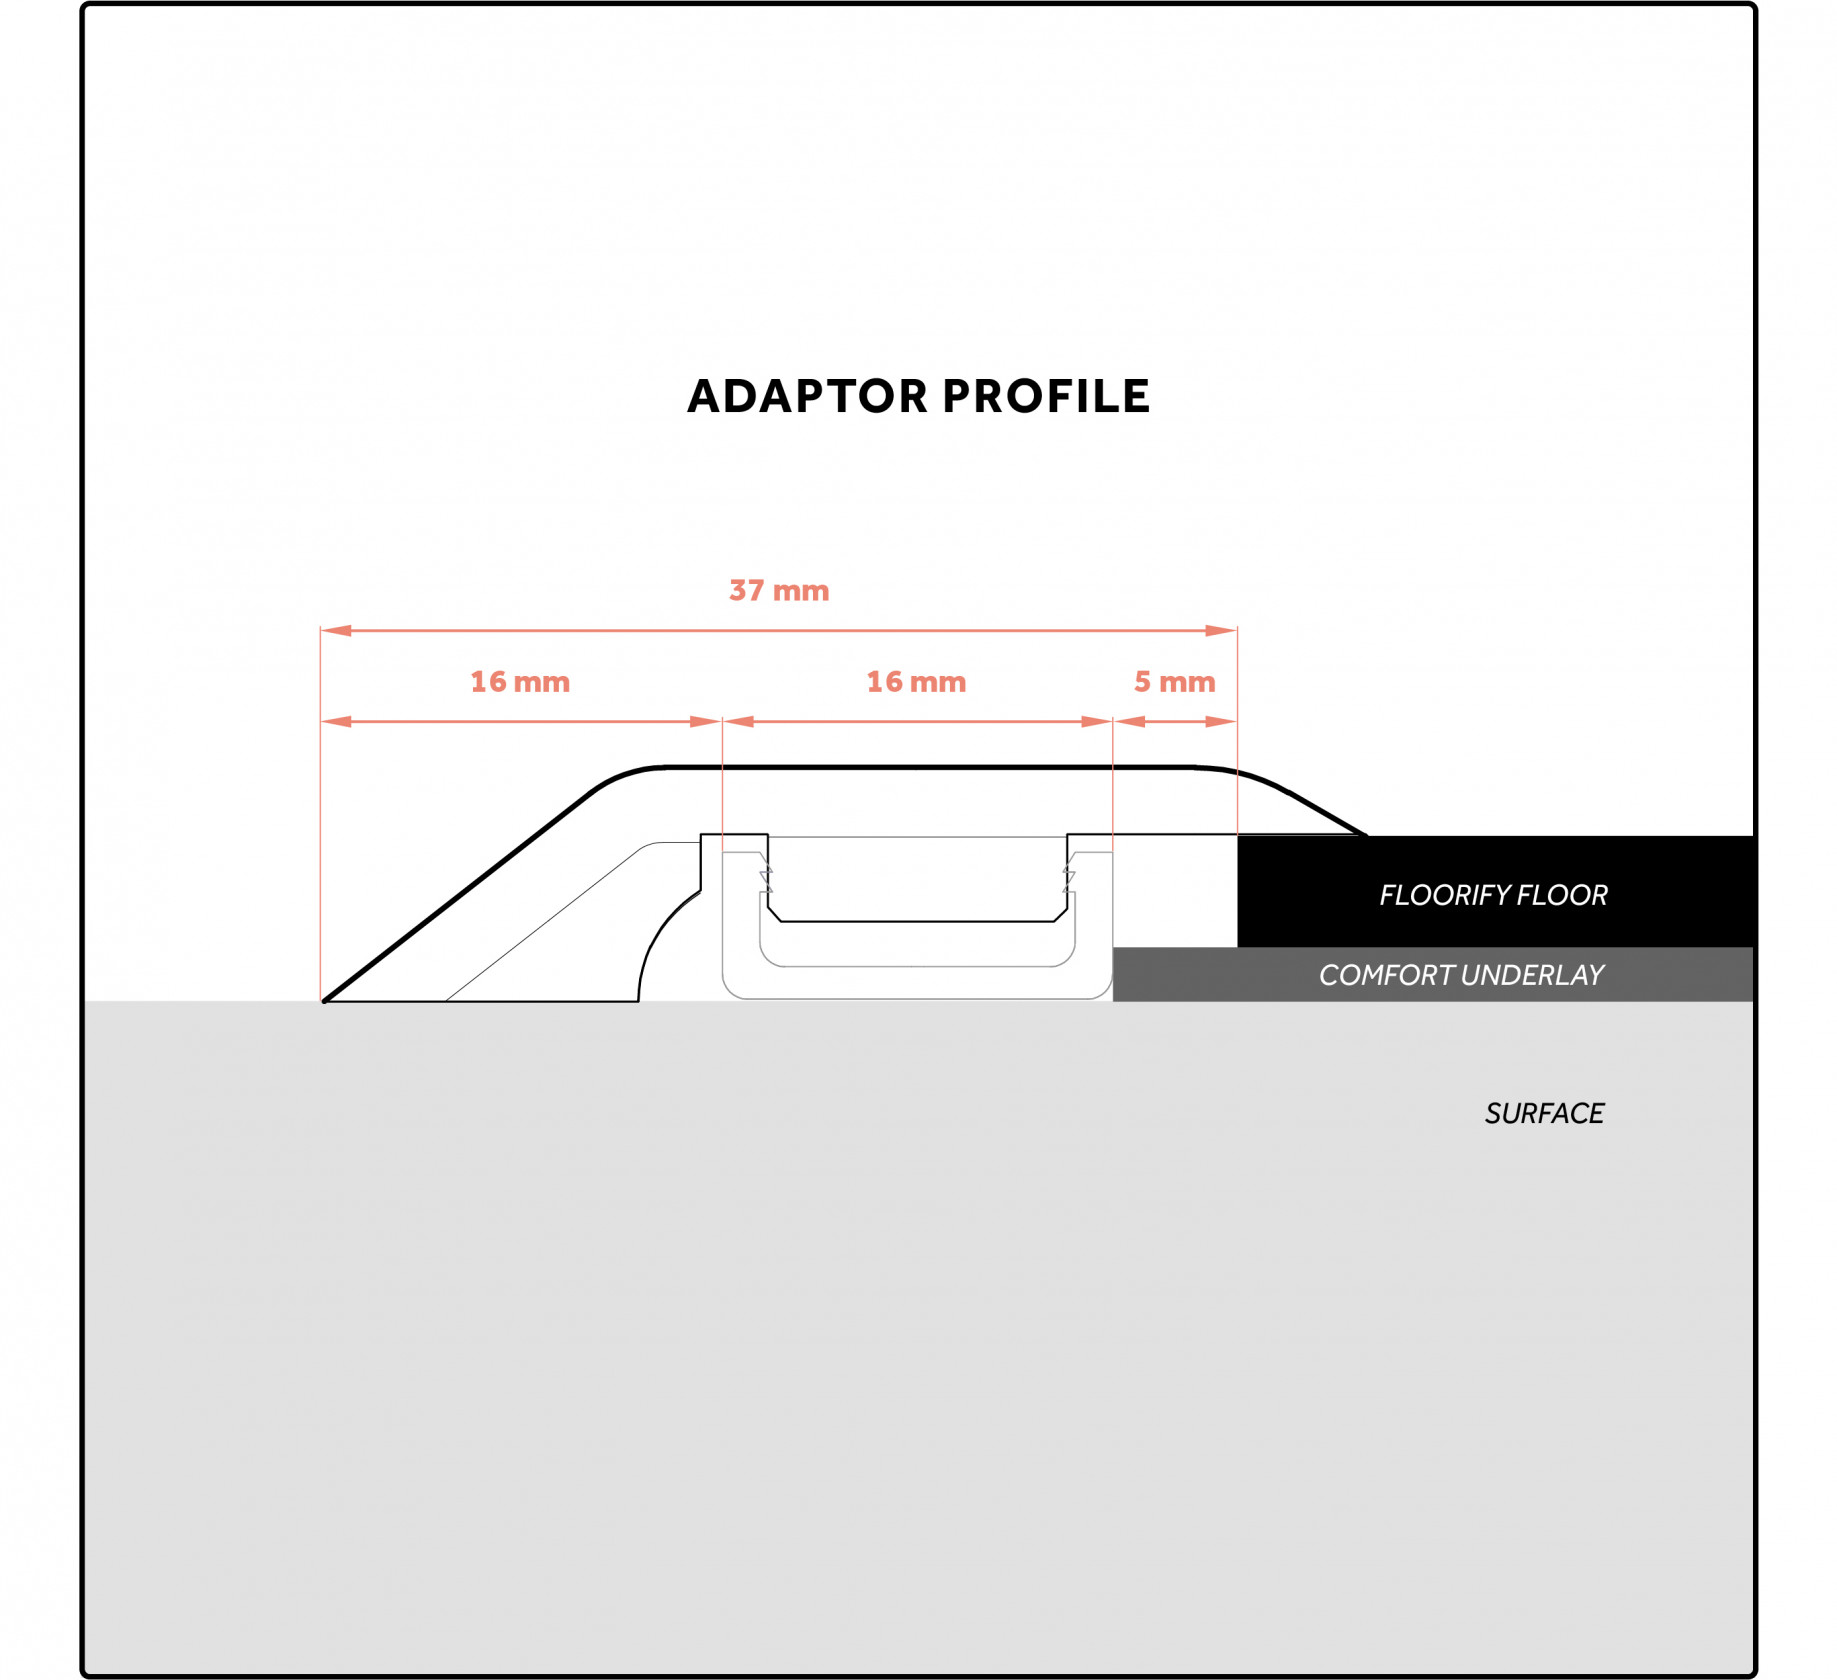 Floorify - Adaptor profile.jpg